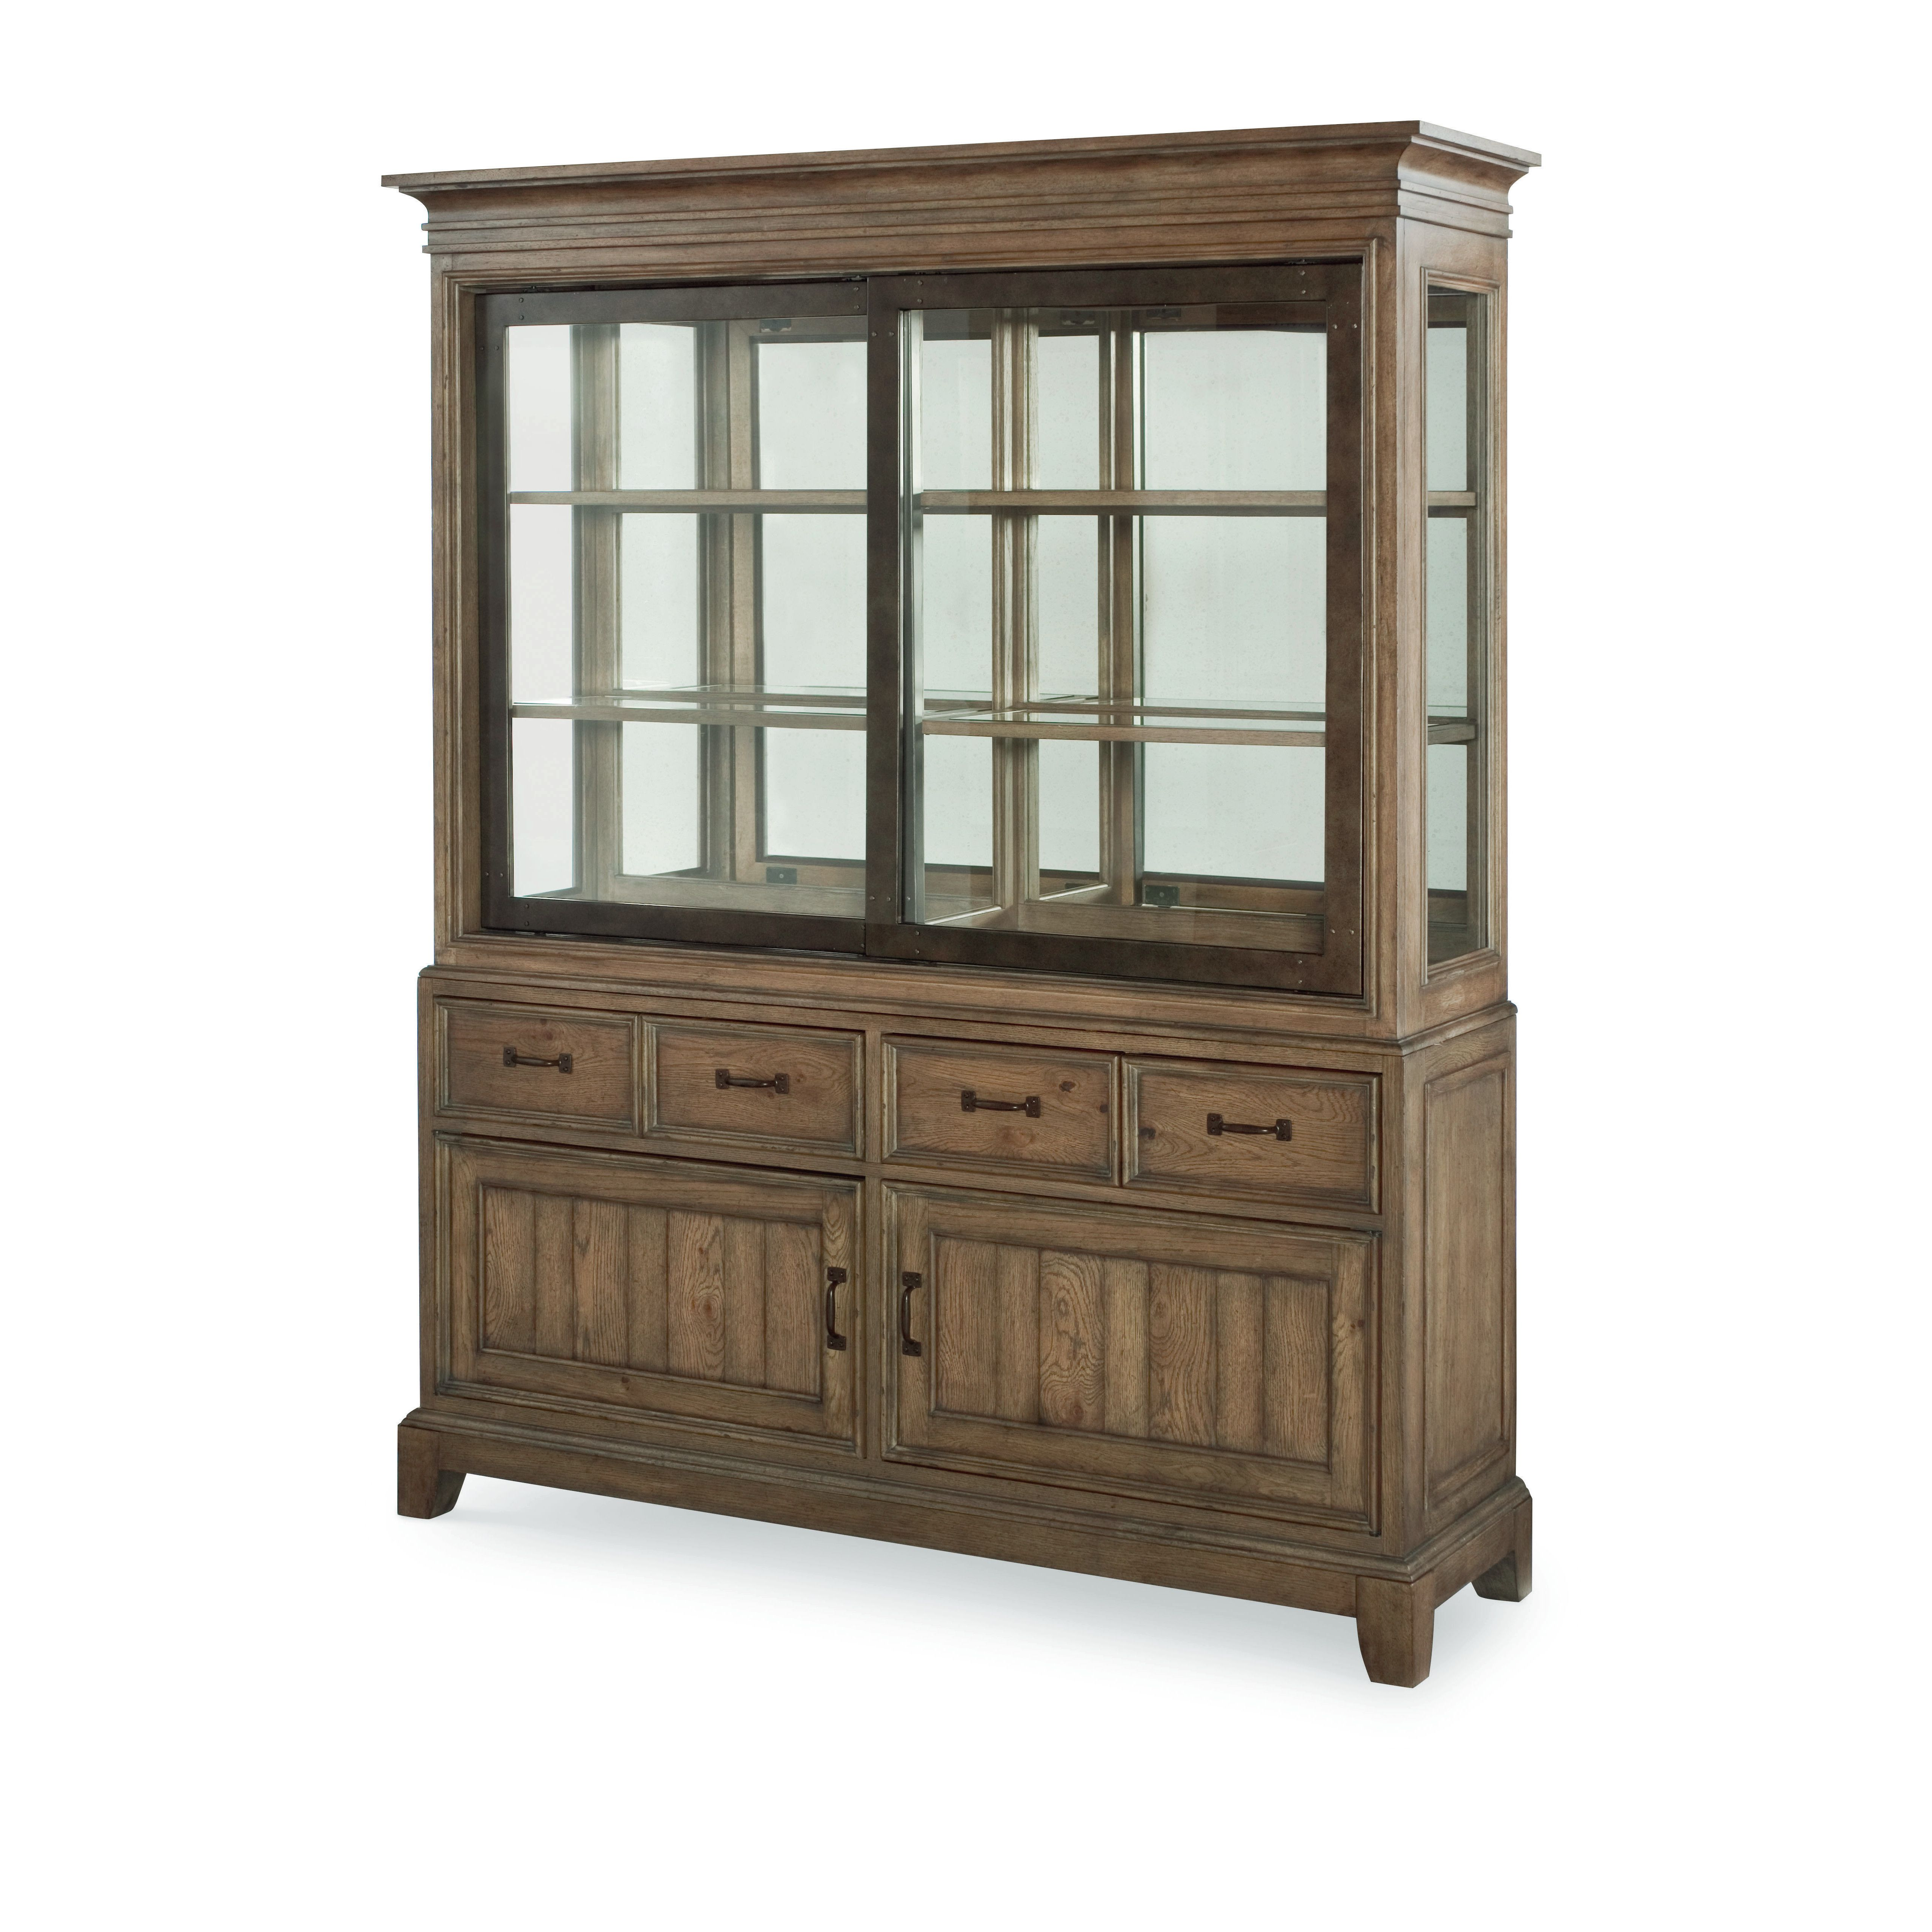 Legacy Classic Furniture MetalWorks China Cabinet